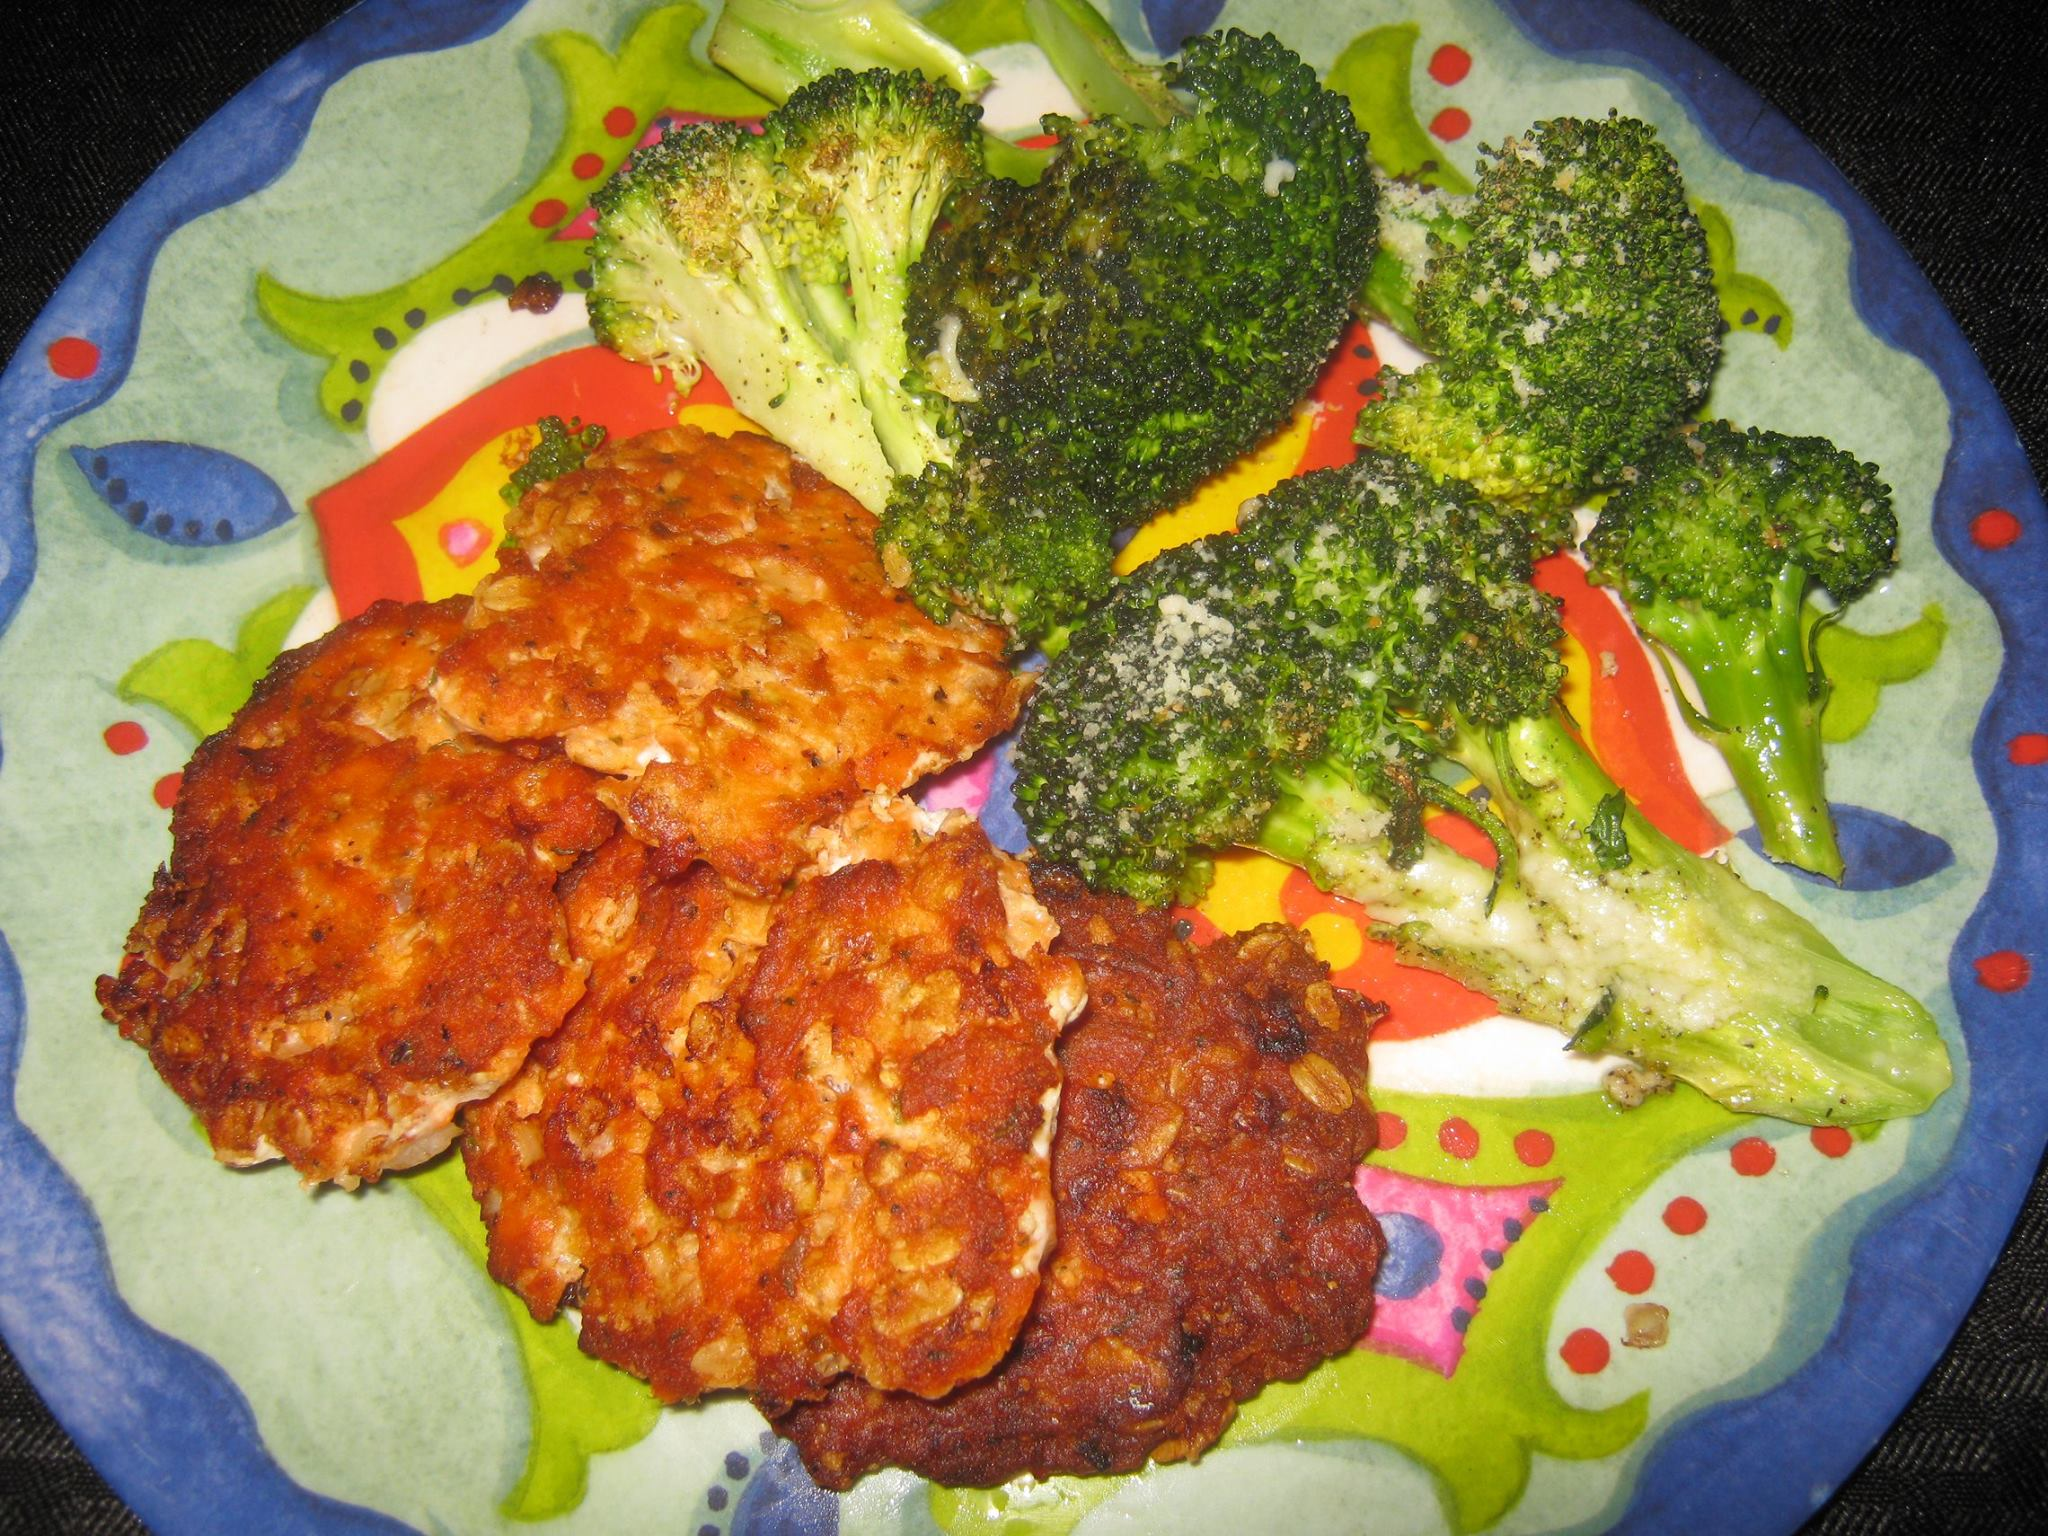 Salmon patties and broccoli parmesan cheese